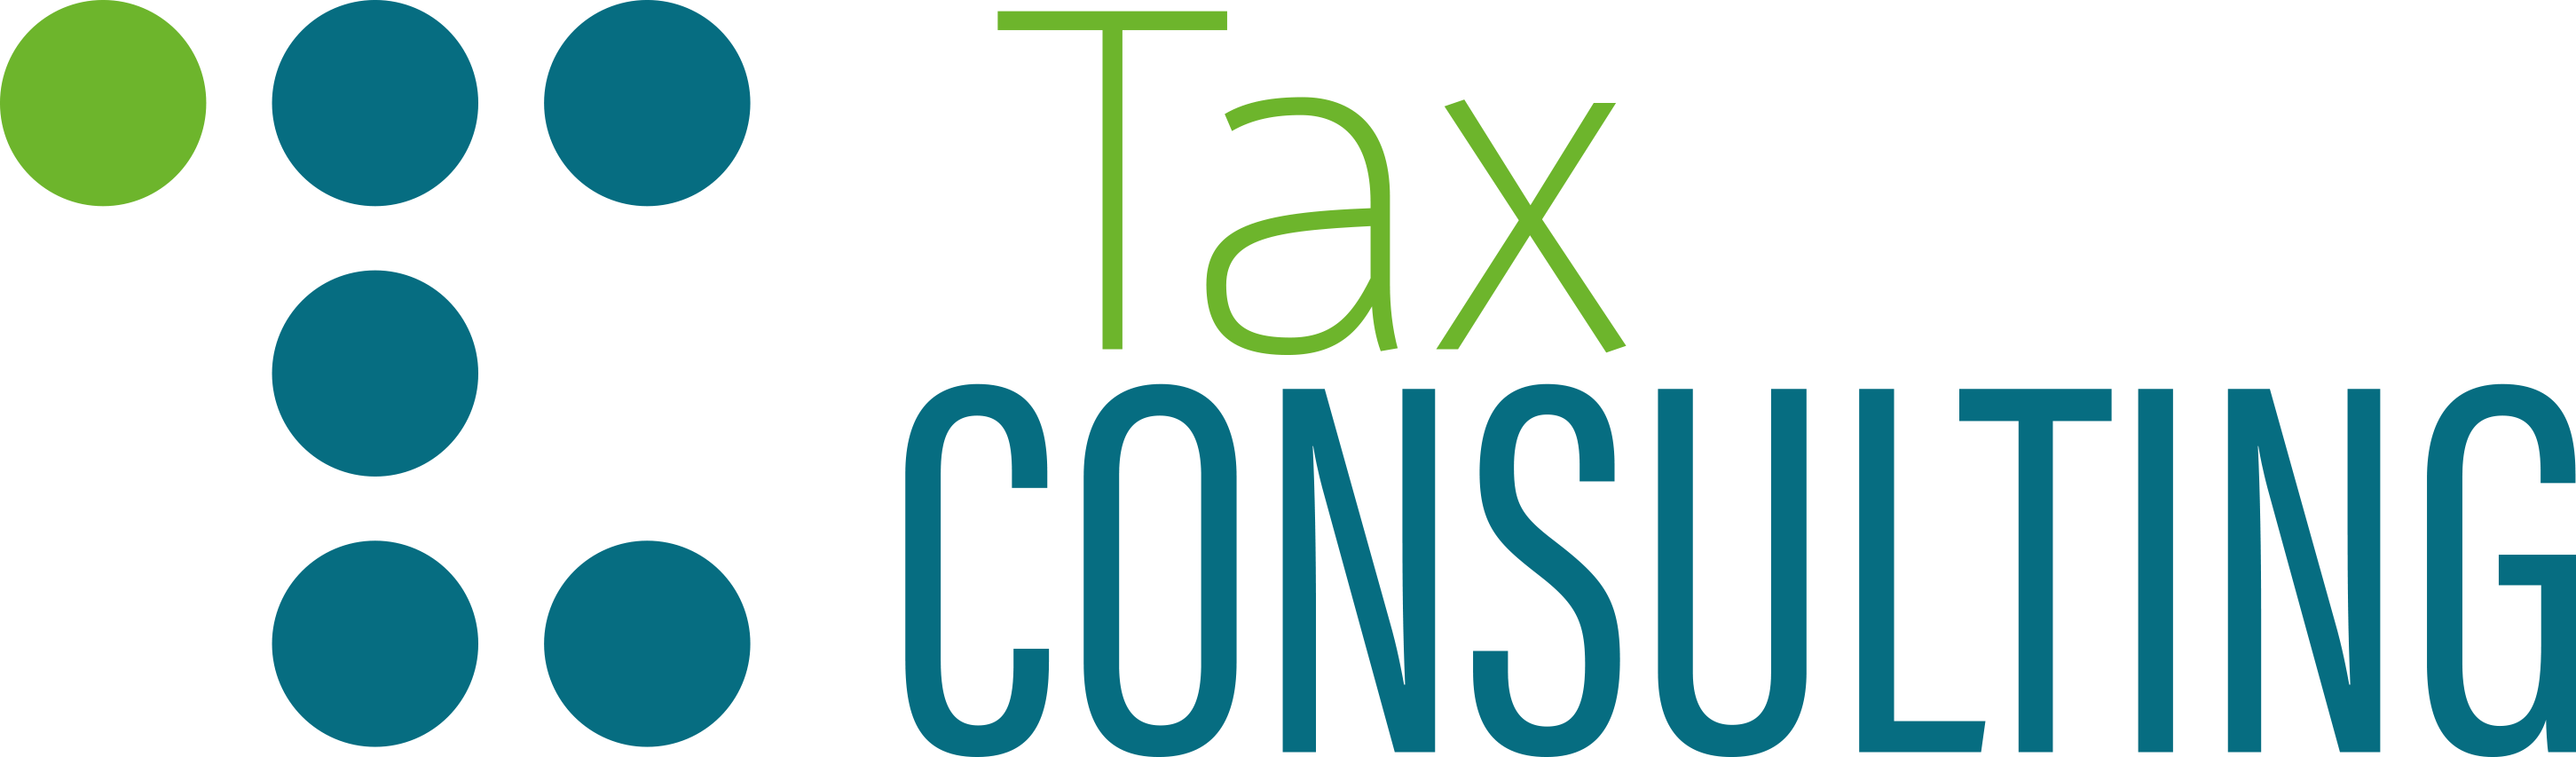 Tax Consulting Ramsel